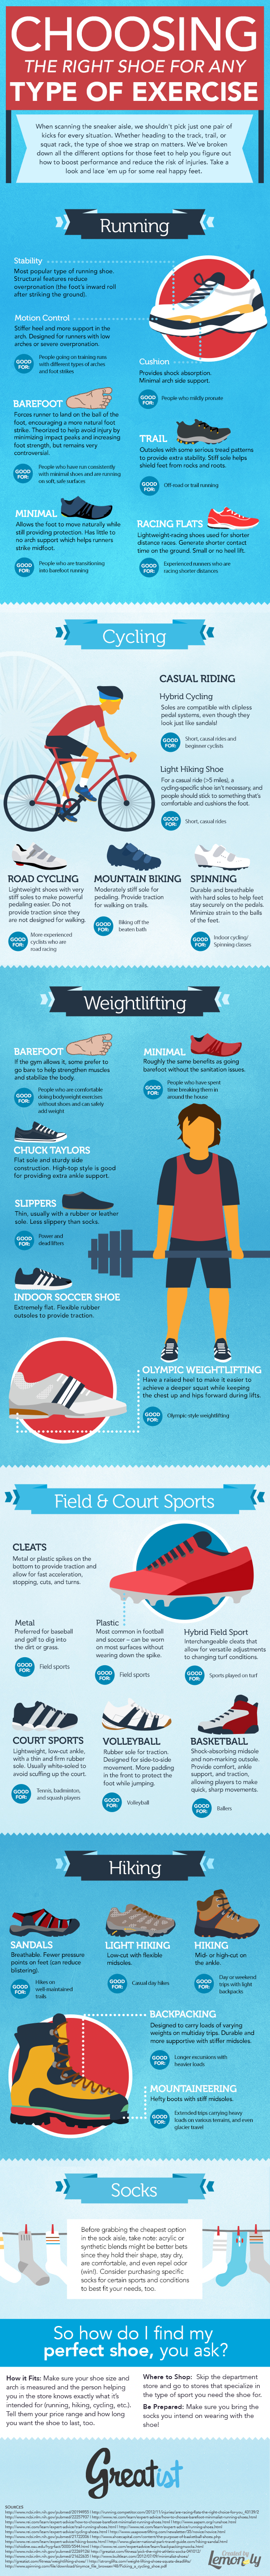 choosing-the-right-shoe-for-any-type-of-exercise_50f5b6bae6c46